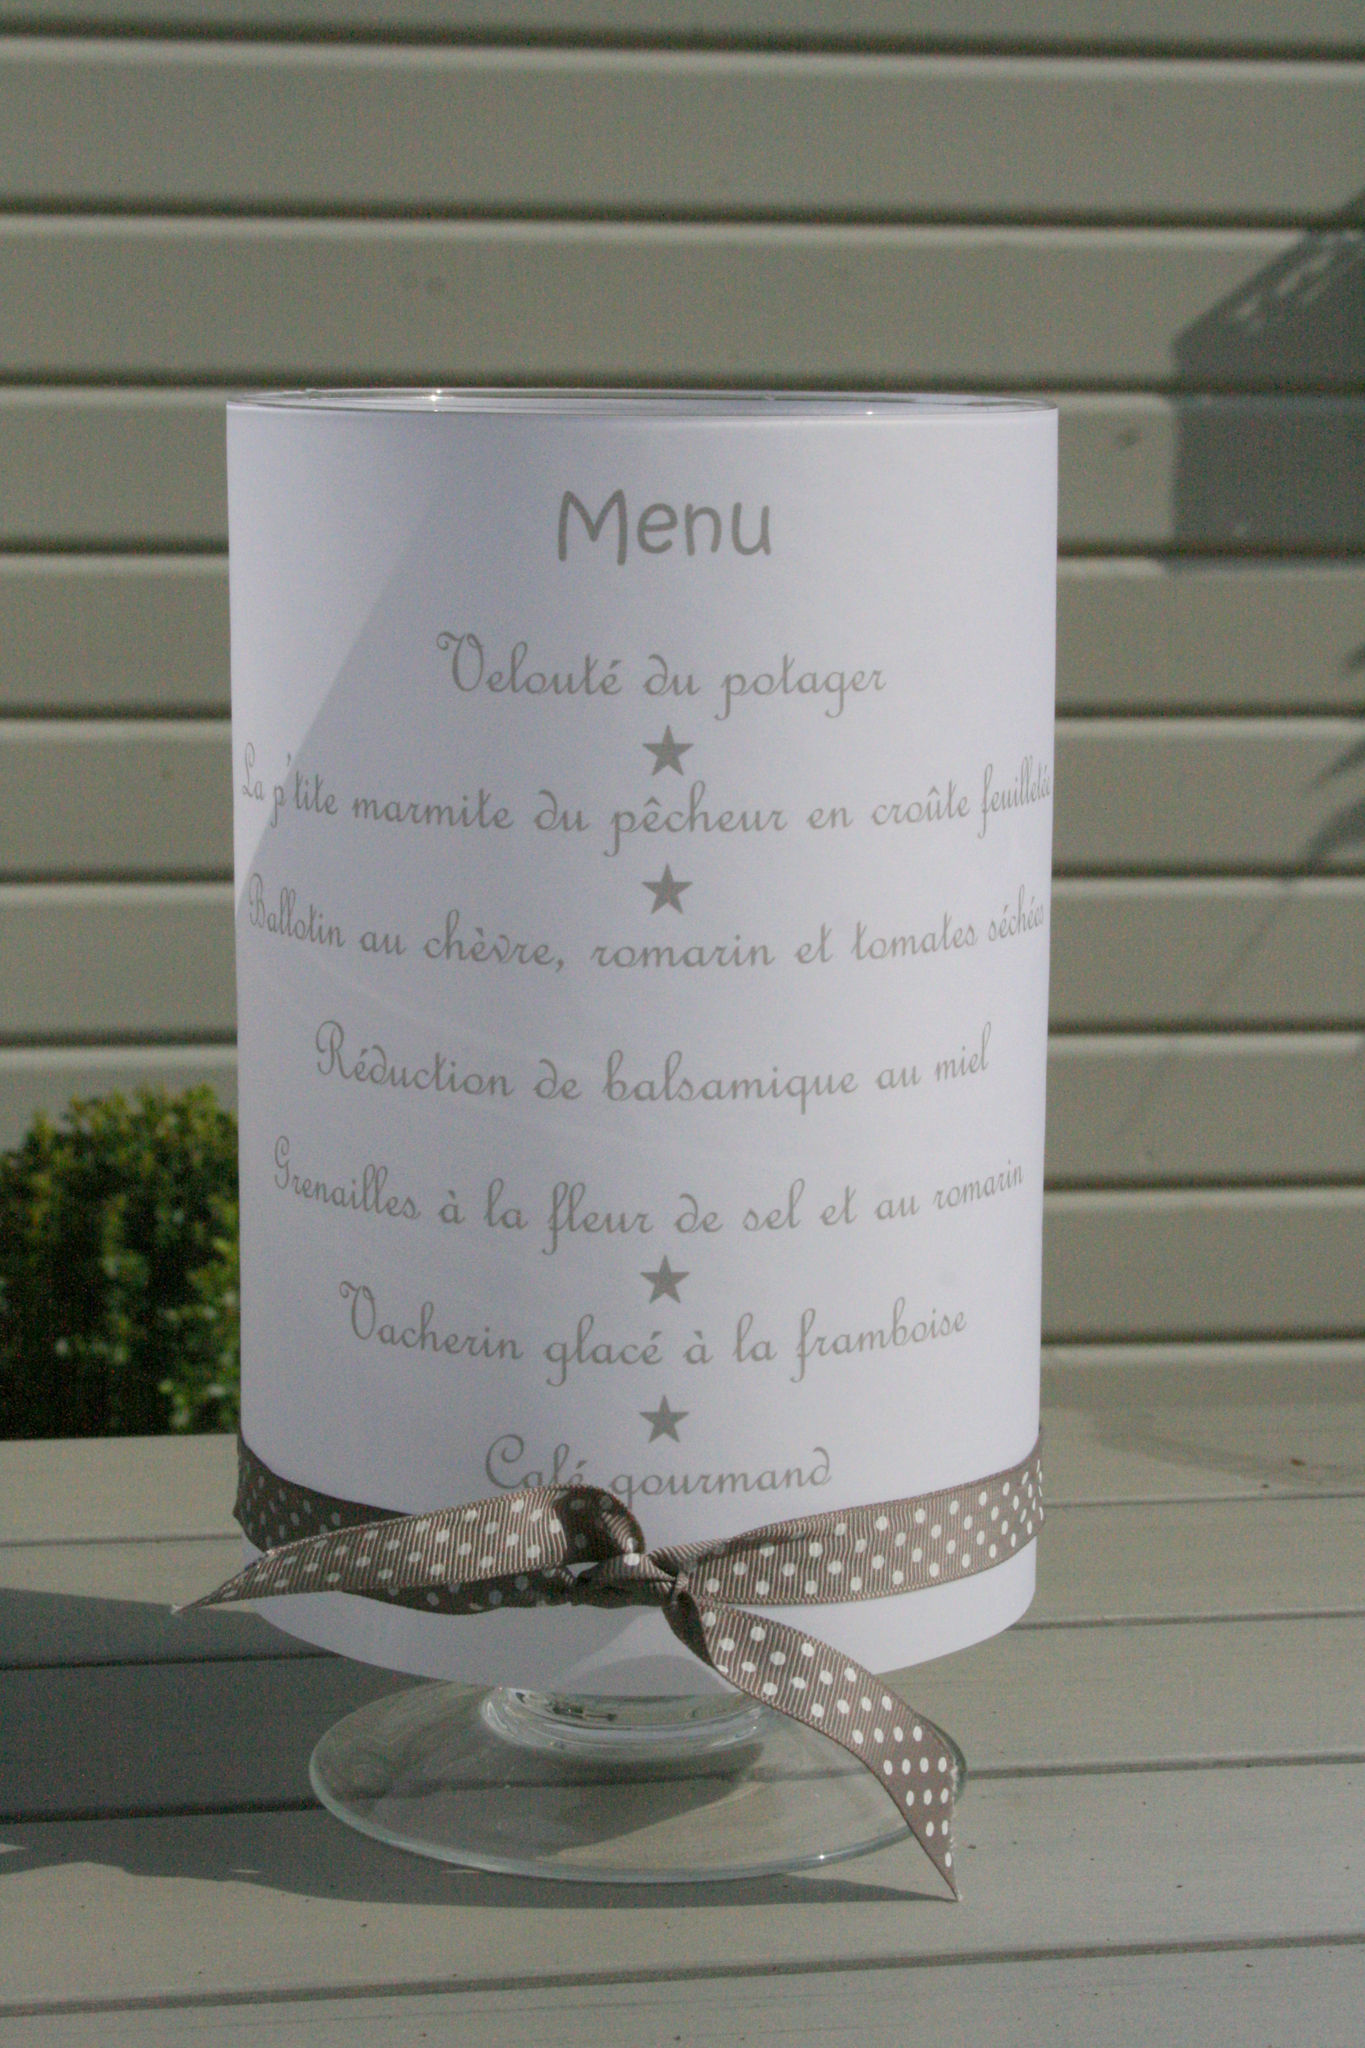 Pr sentation de menu j 39 ai un secret te dire for Idee menu original